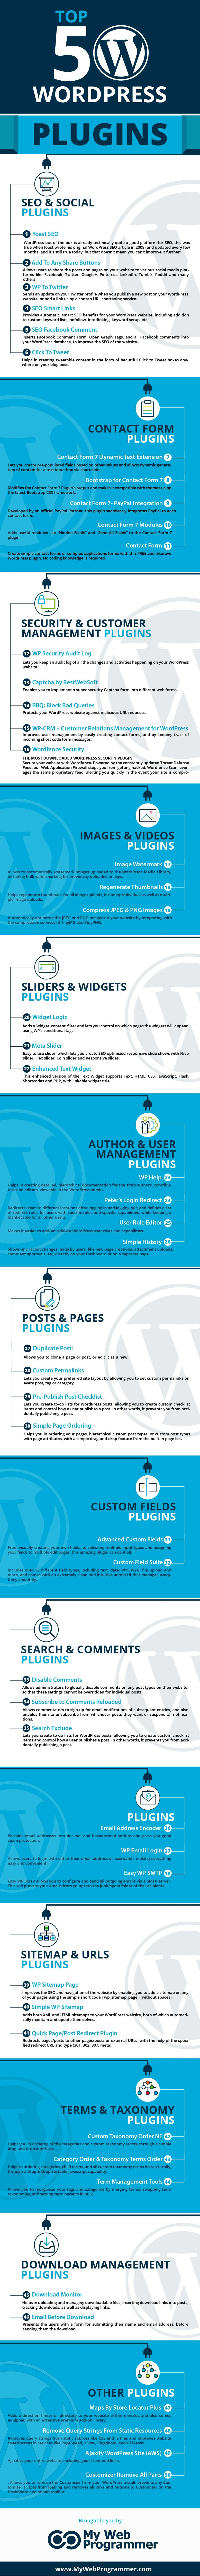 For Web Designers: Top 50 WordPress Plugins To Enhance Your